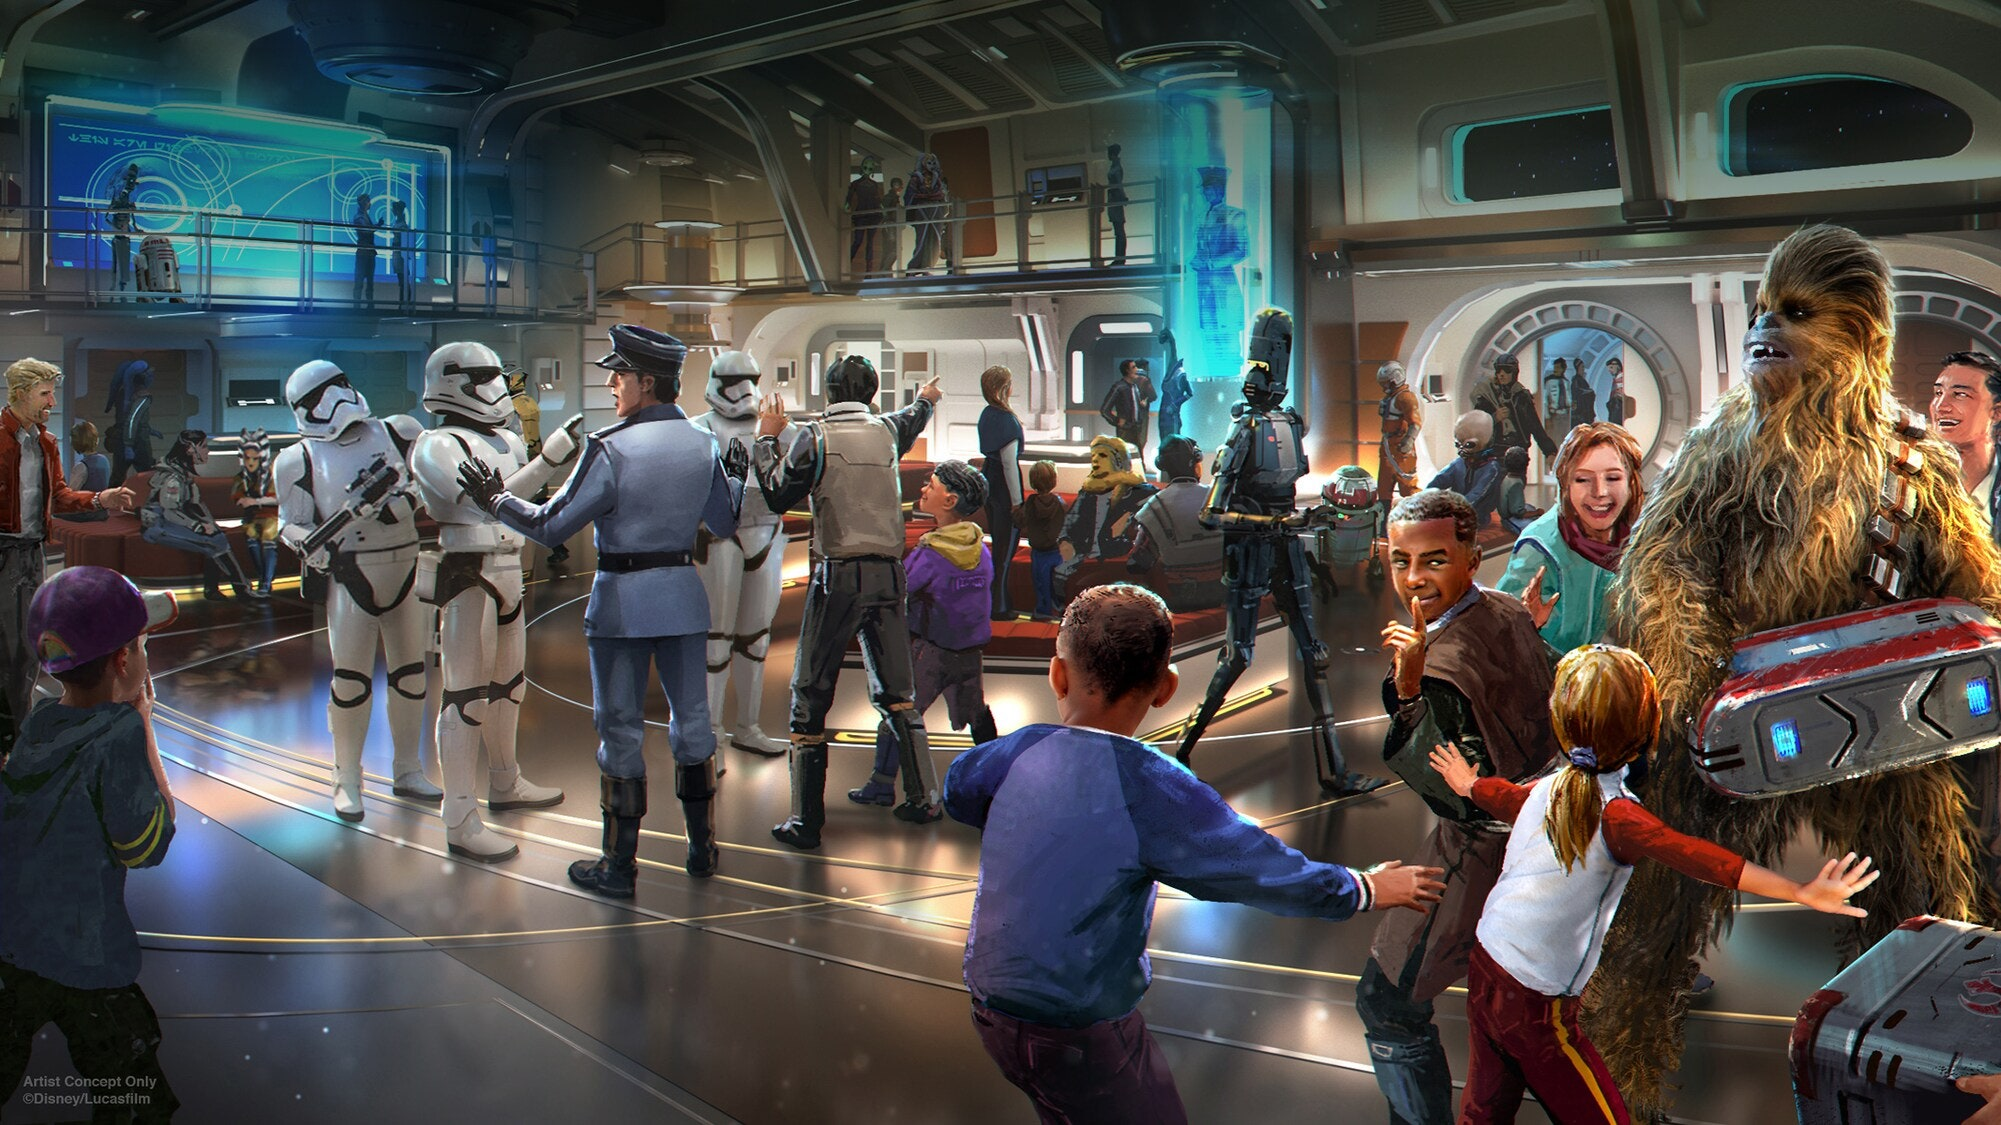 Star Wars: Galactic Starcruiser is opening at Disney World in 2022 16